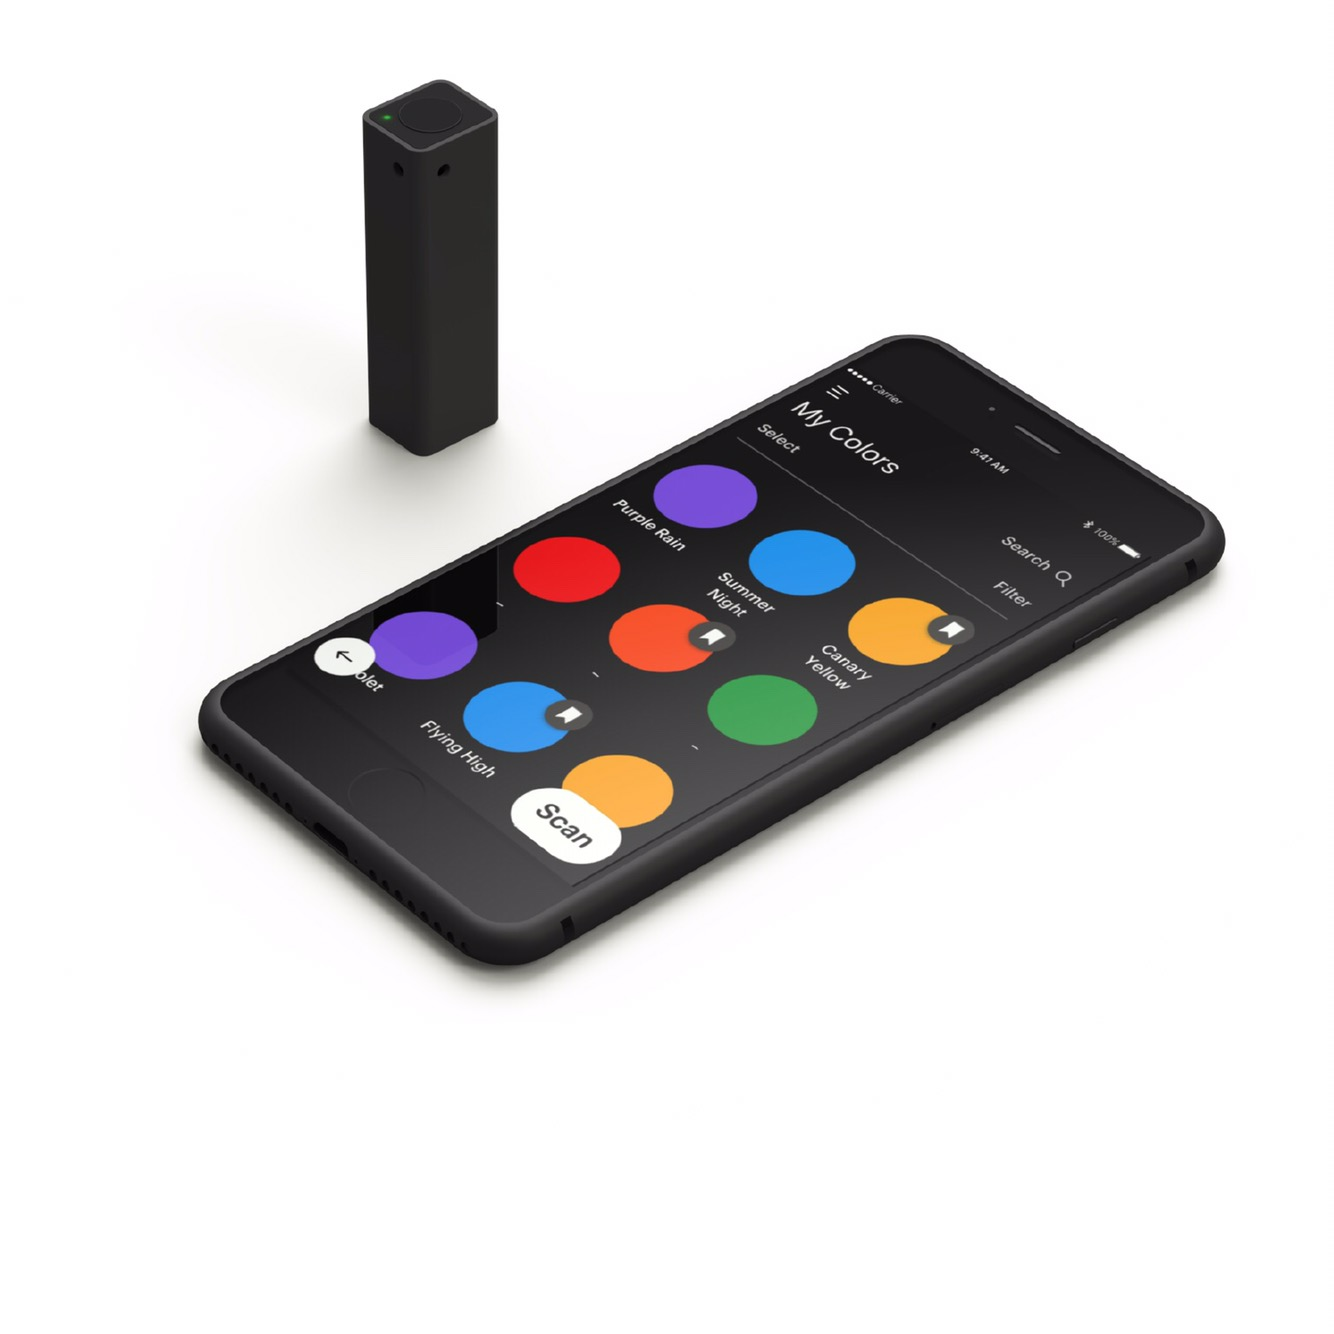 Pico colour scanner from Palette